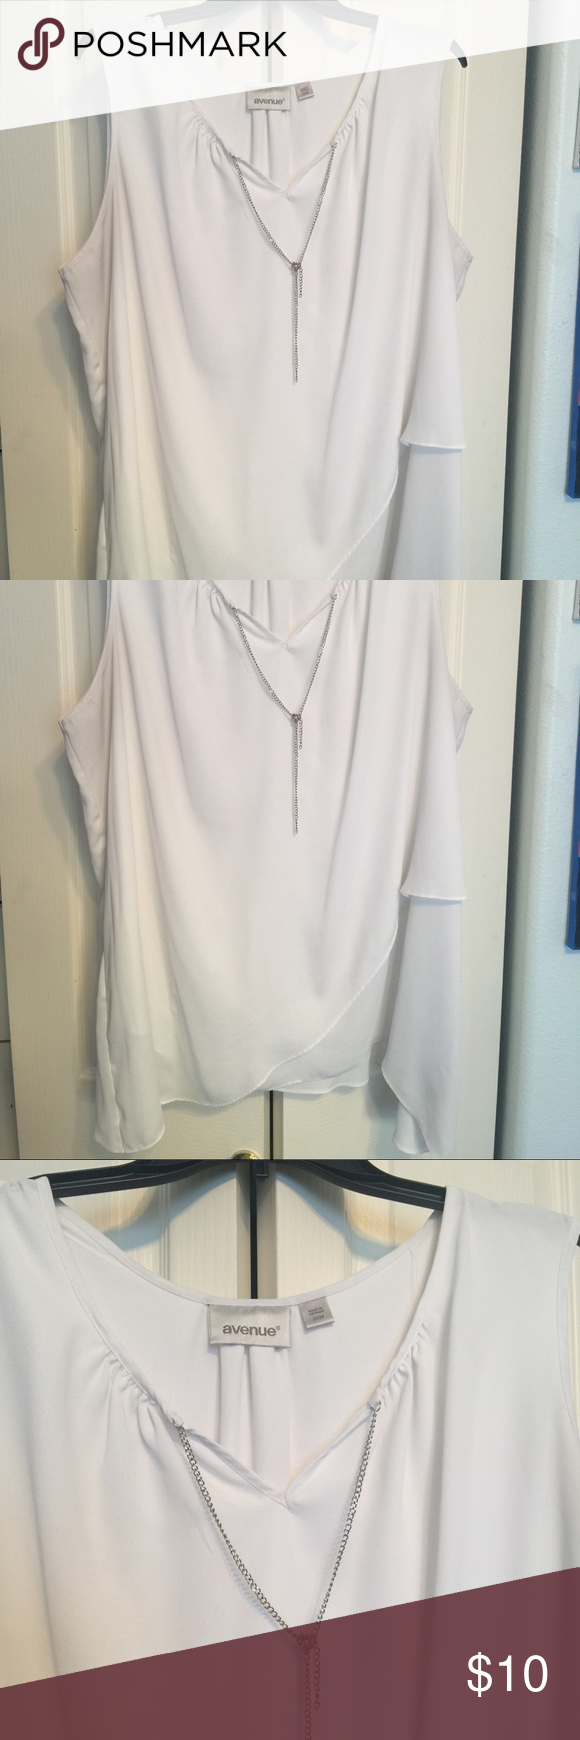 Avenue white sleeveless blouse Feminine white blouse with mock necklace.  Crisscross bottom.  Gently used.  Very light and flowing. Perfect for summer! Wear with jeans or under a blazer for office. Avenue Tops Blouses